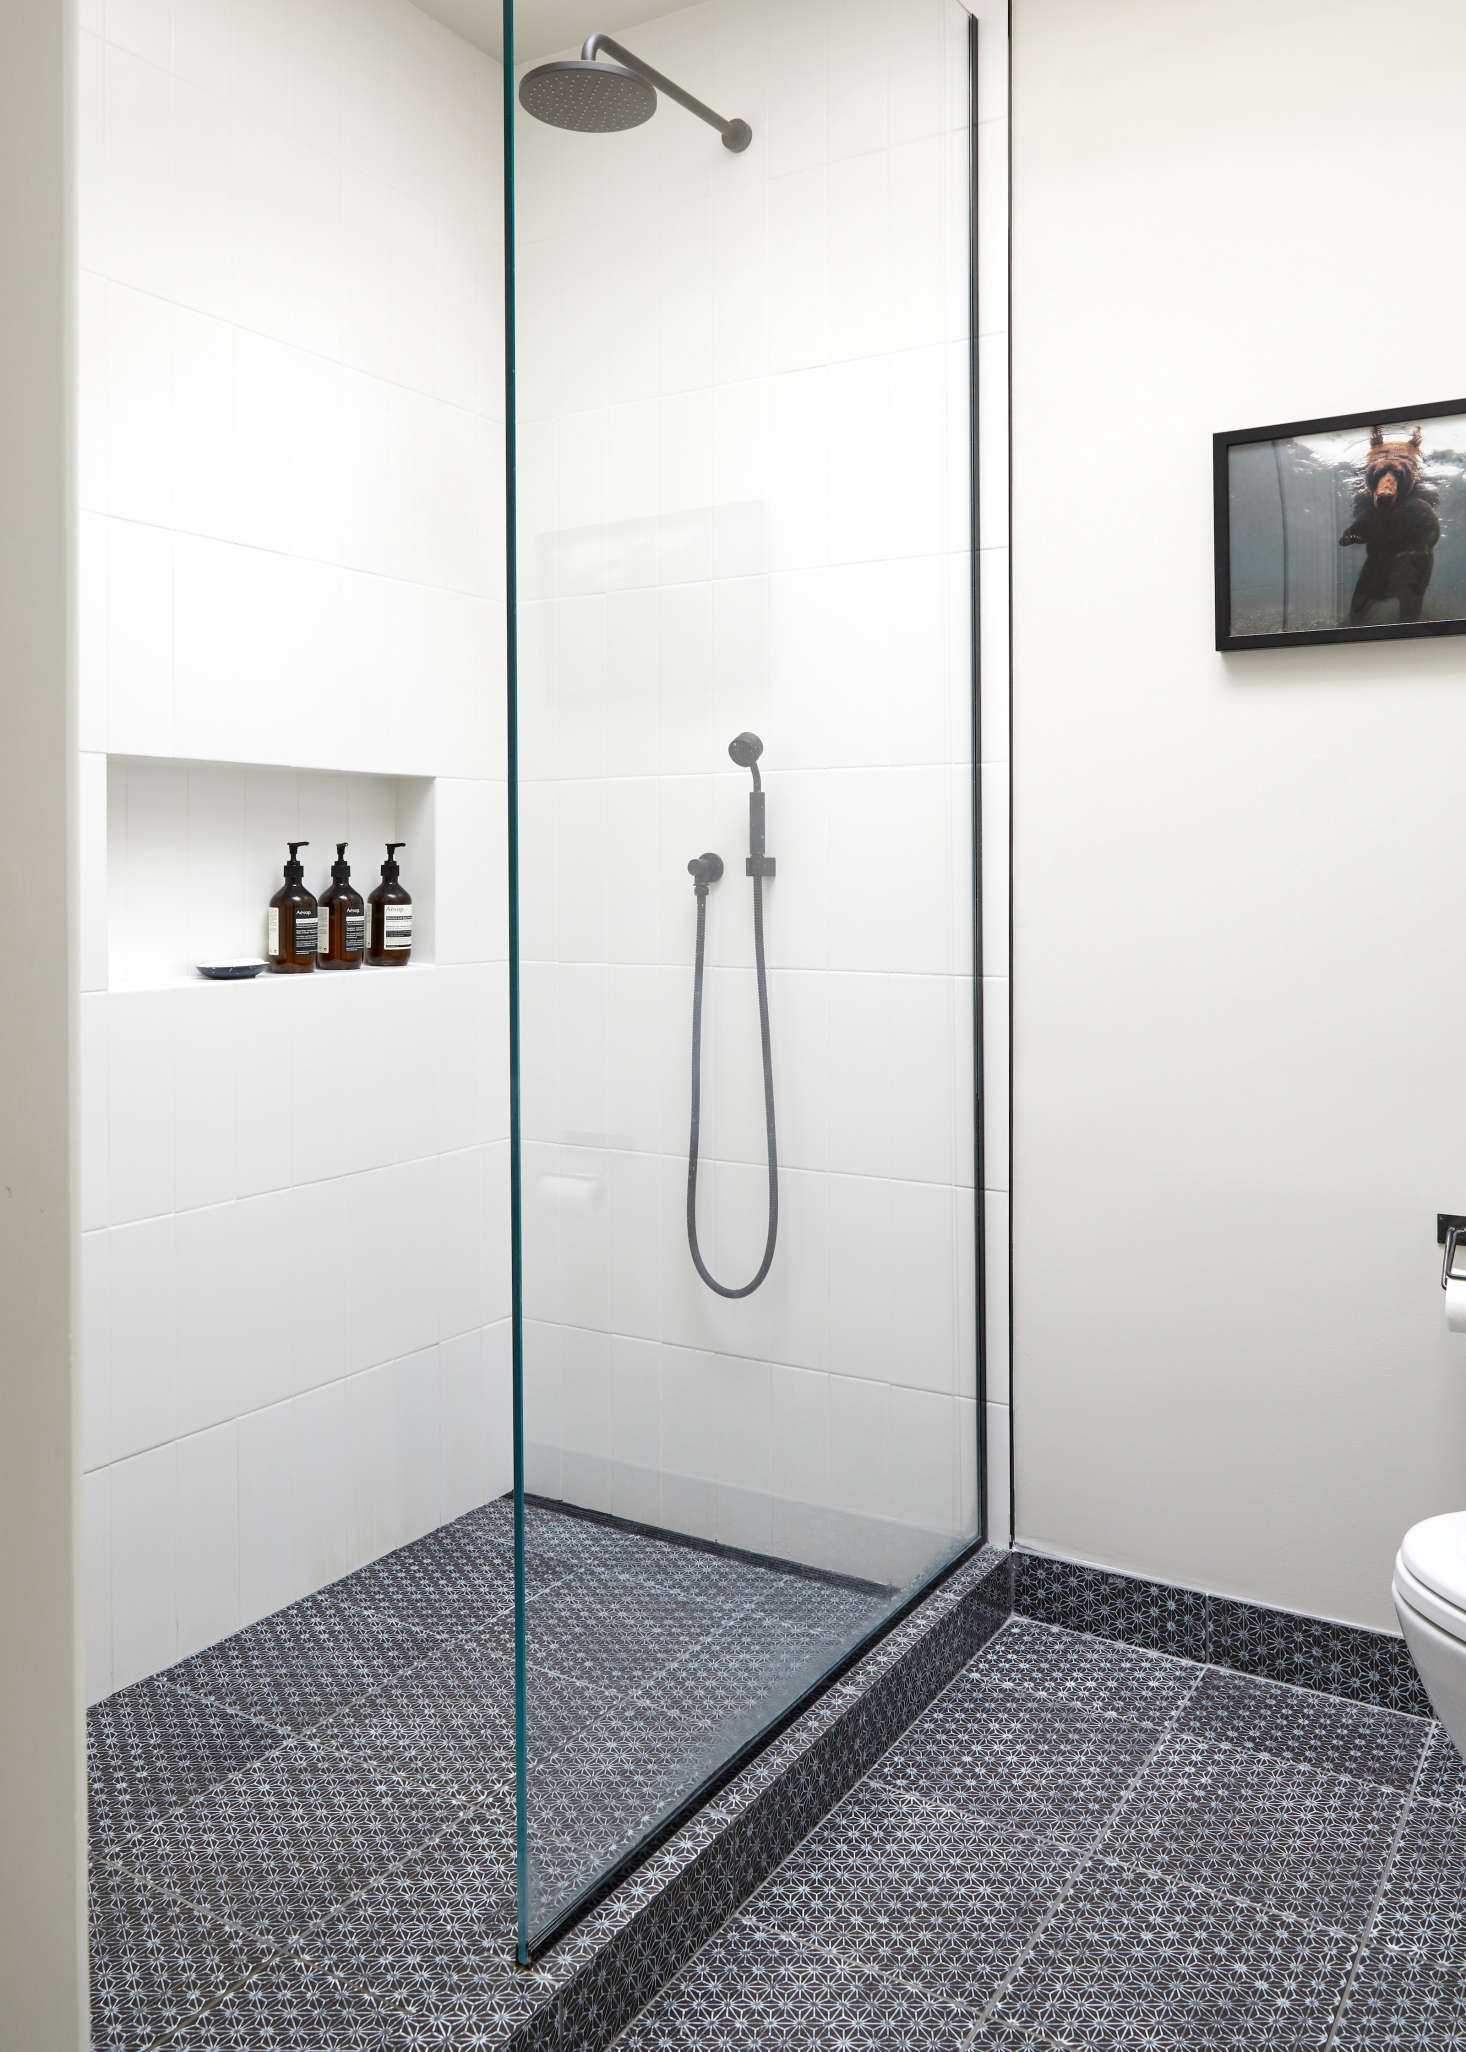 Boston Bathroom Remodeling Minimalist warm minimalism in a young architect's own brooklyn townhouse